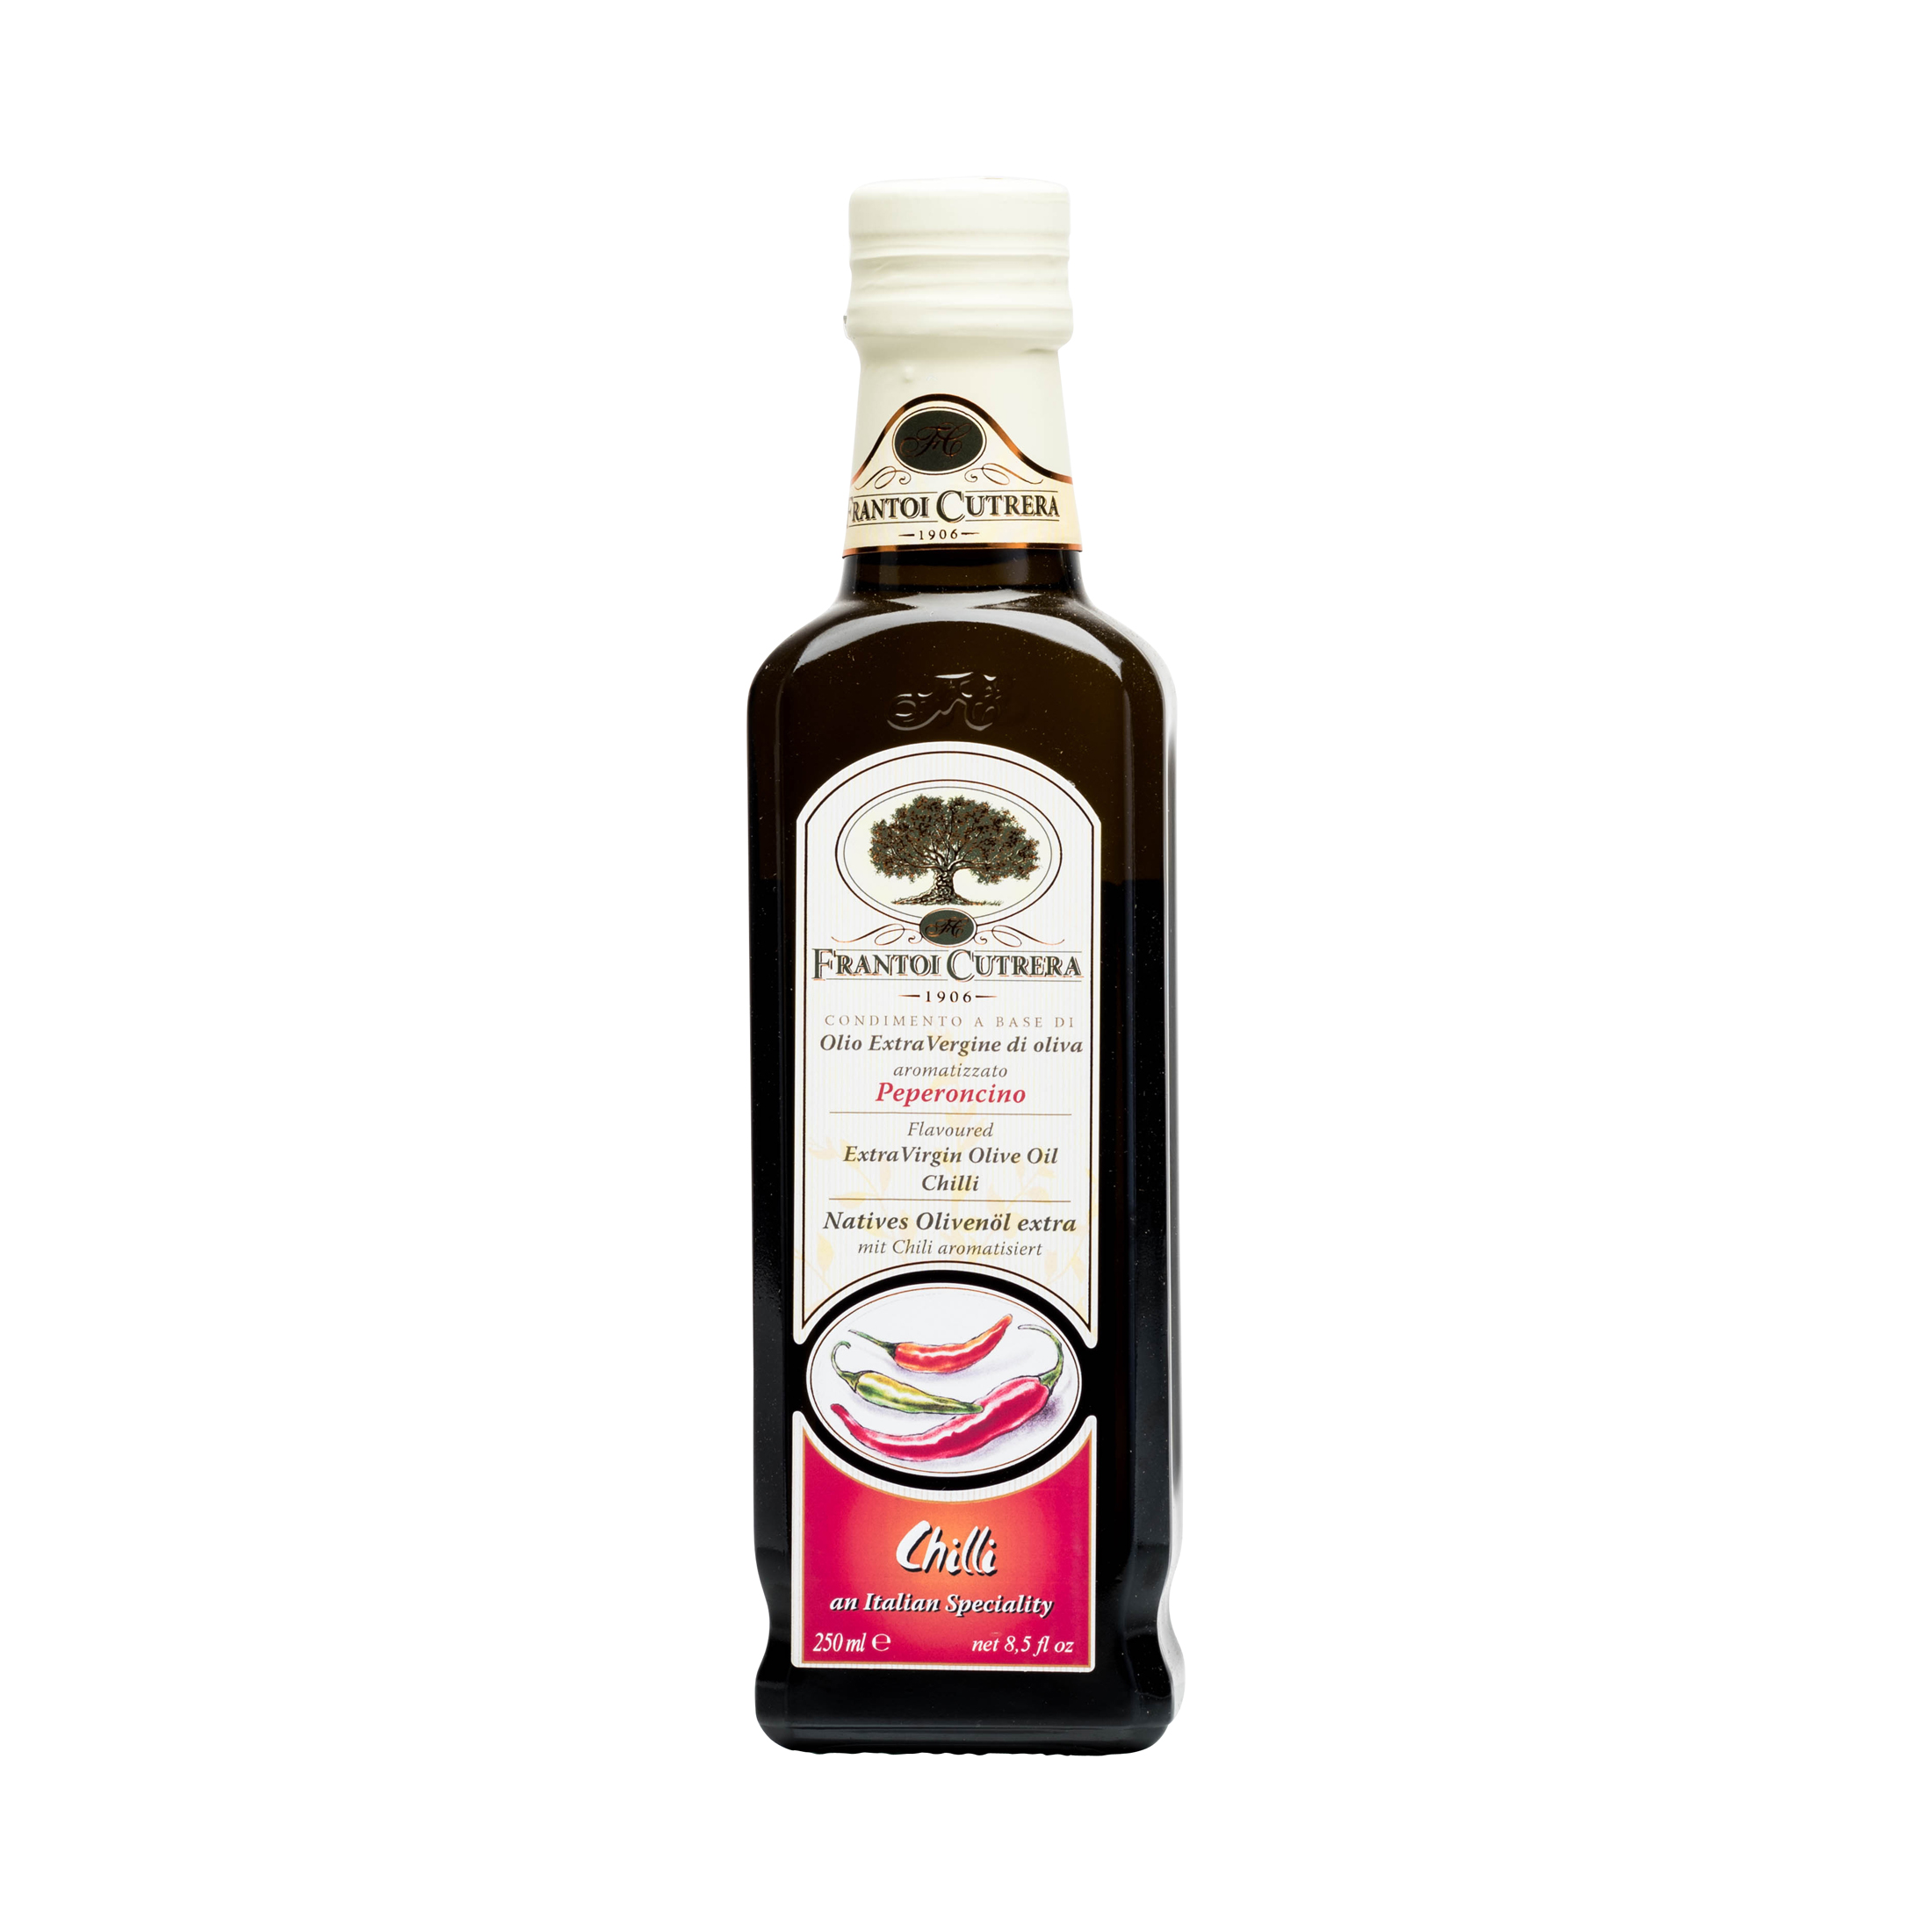 CUTRERA CHILLI EXTRA VIRGIN OLIVE OIL